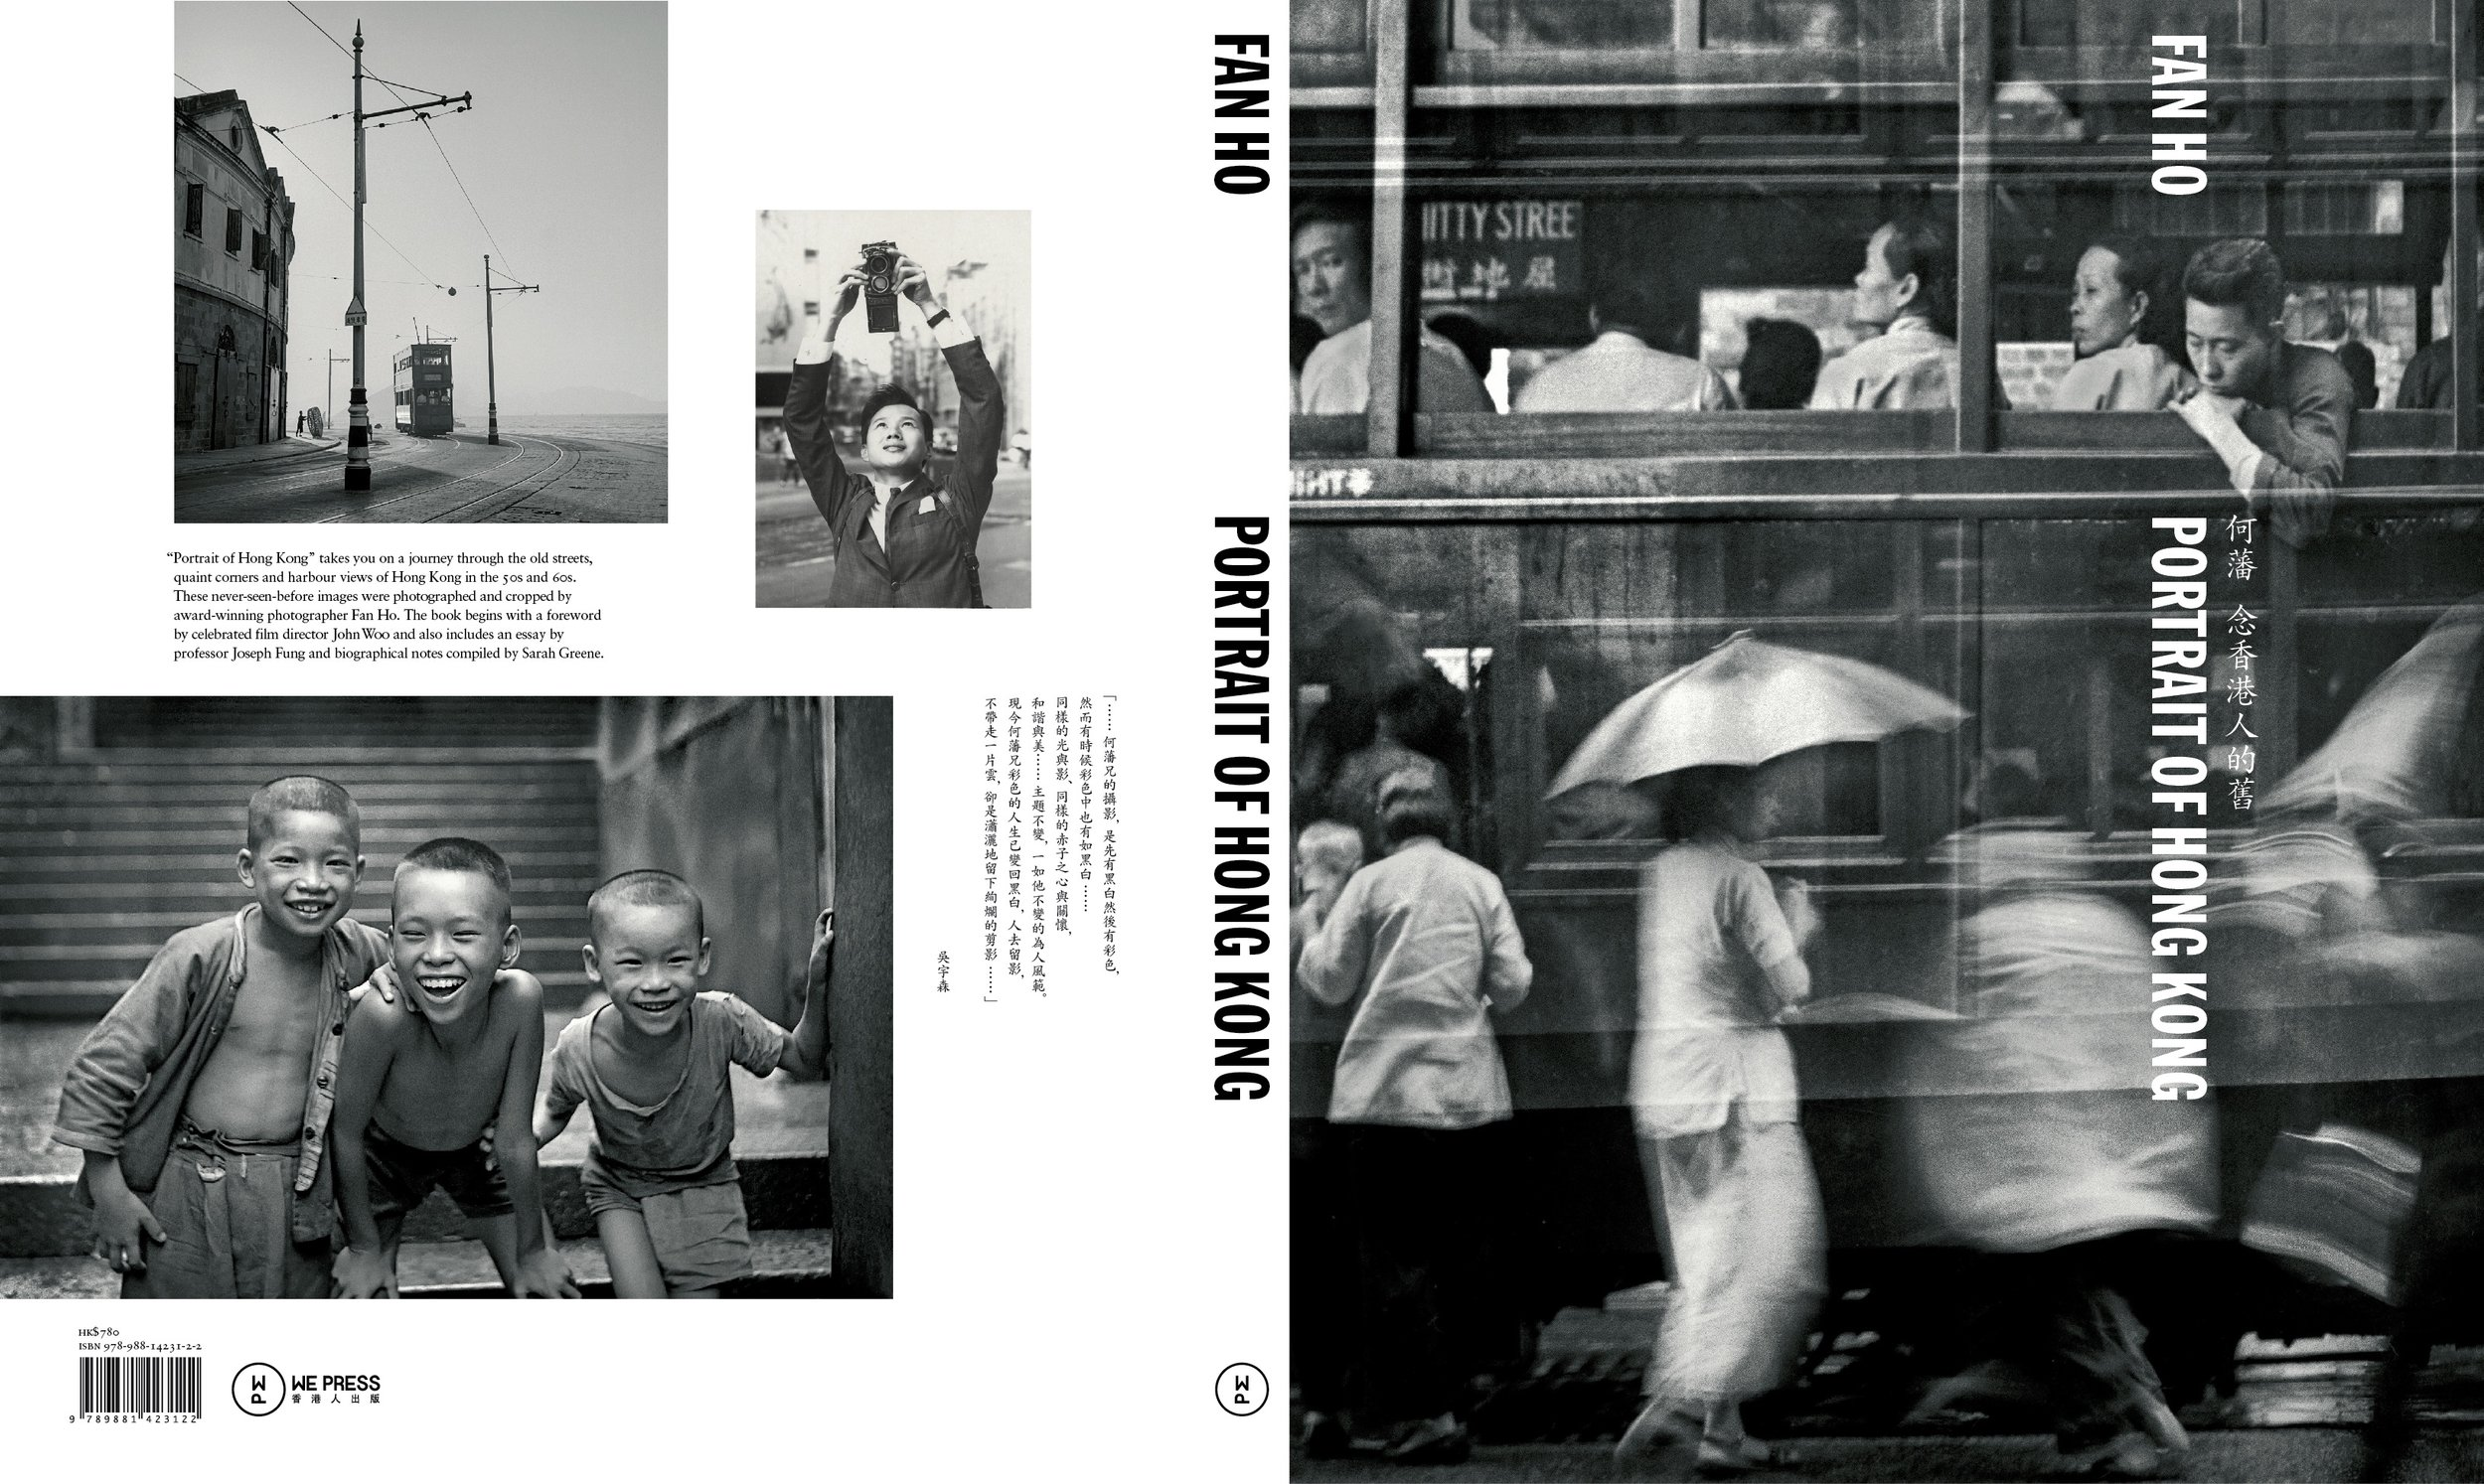 More than a year and a half in making,   Portrait of Hong Kong  《念香港人的舊》 is published. The family is grateful to WE Press Company Limited and Blue Lotus Gallery for their support of this happening. This book contains much information on Master Ho's passion and emotion on photography and excerpts from   Thoughts on Street Photography  《街頭攝影叢談》 , the book authored by Master Fan Ho at the age of 28. The family would like to thank friends and relatives, and enthusiasts throughout the time for their support. There is always a special place for our beloved Master in our hearts, and let us all continue to celebrate and remember the life and work of Master Fan Ho.